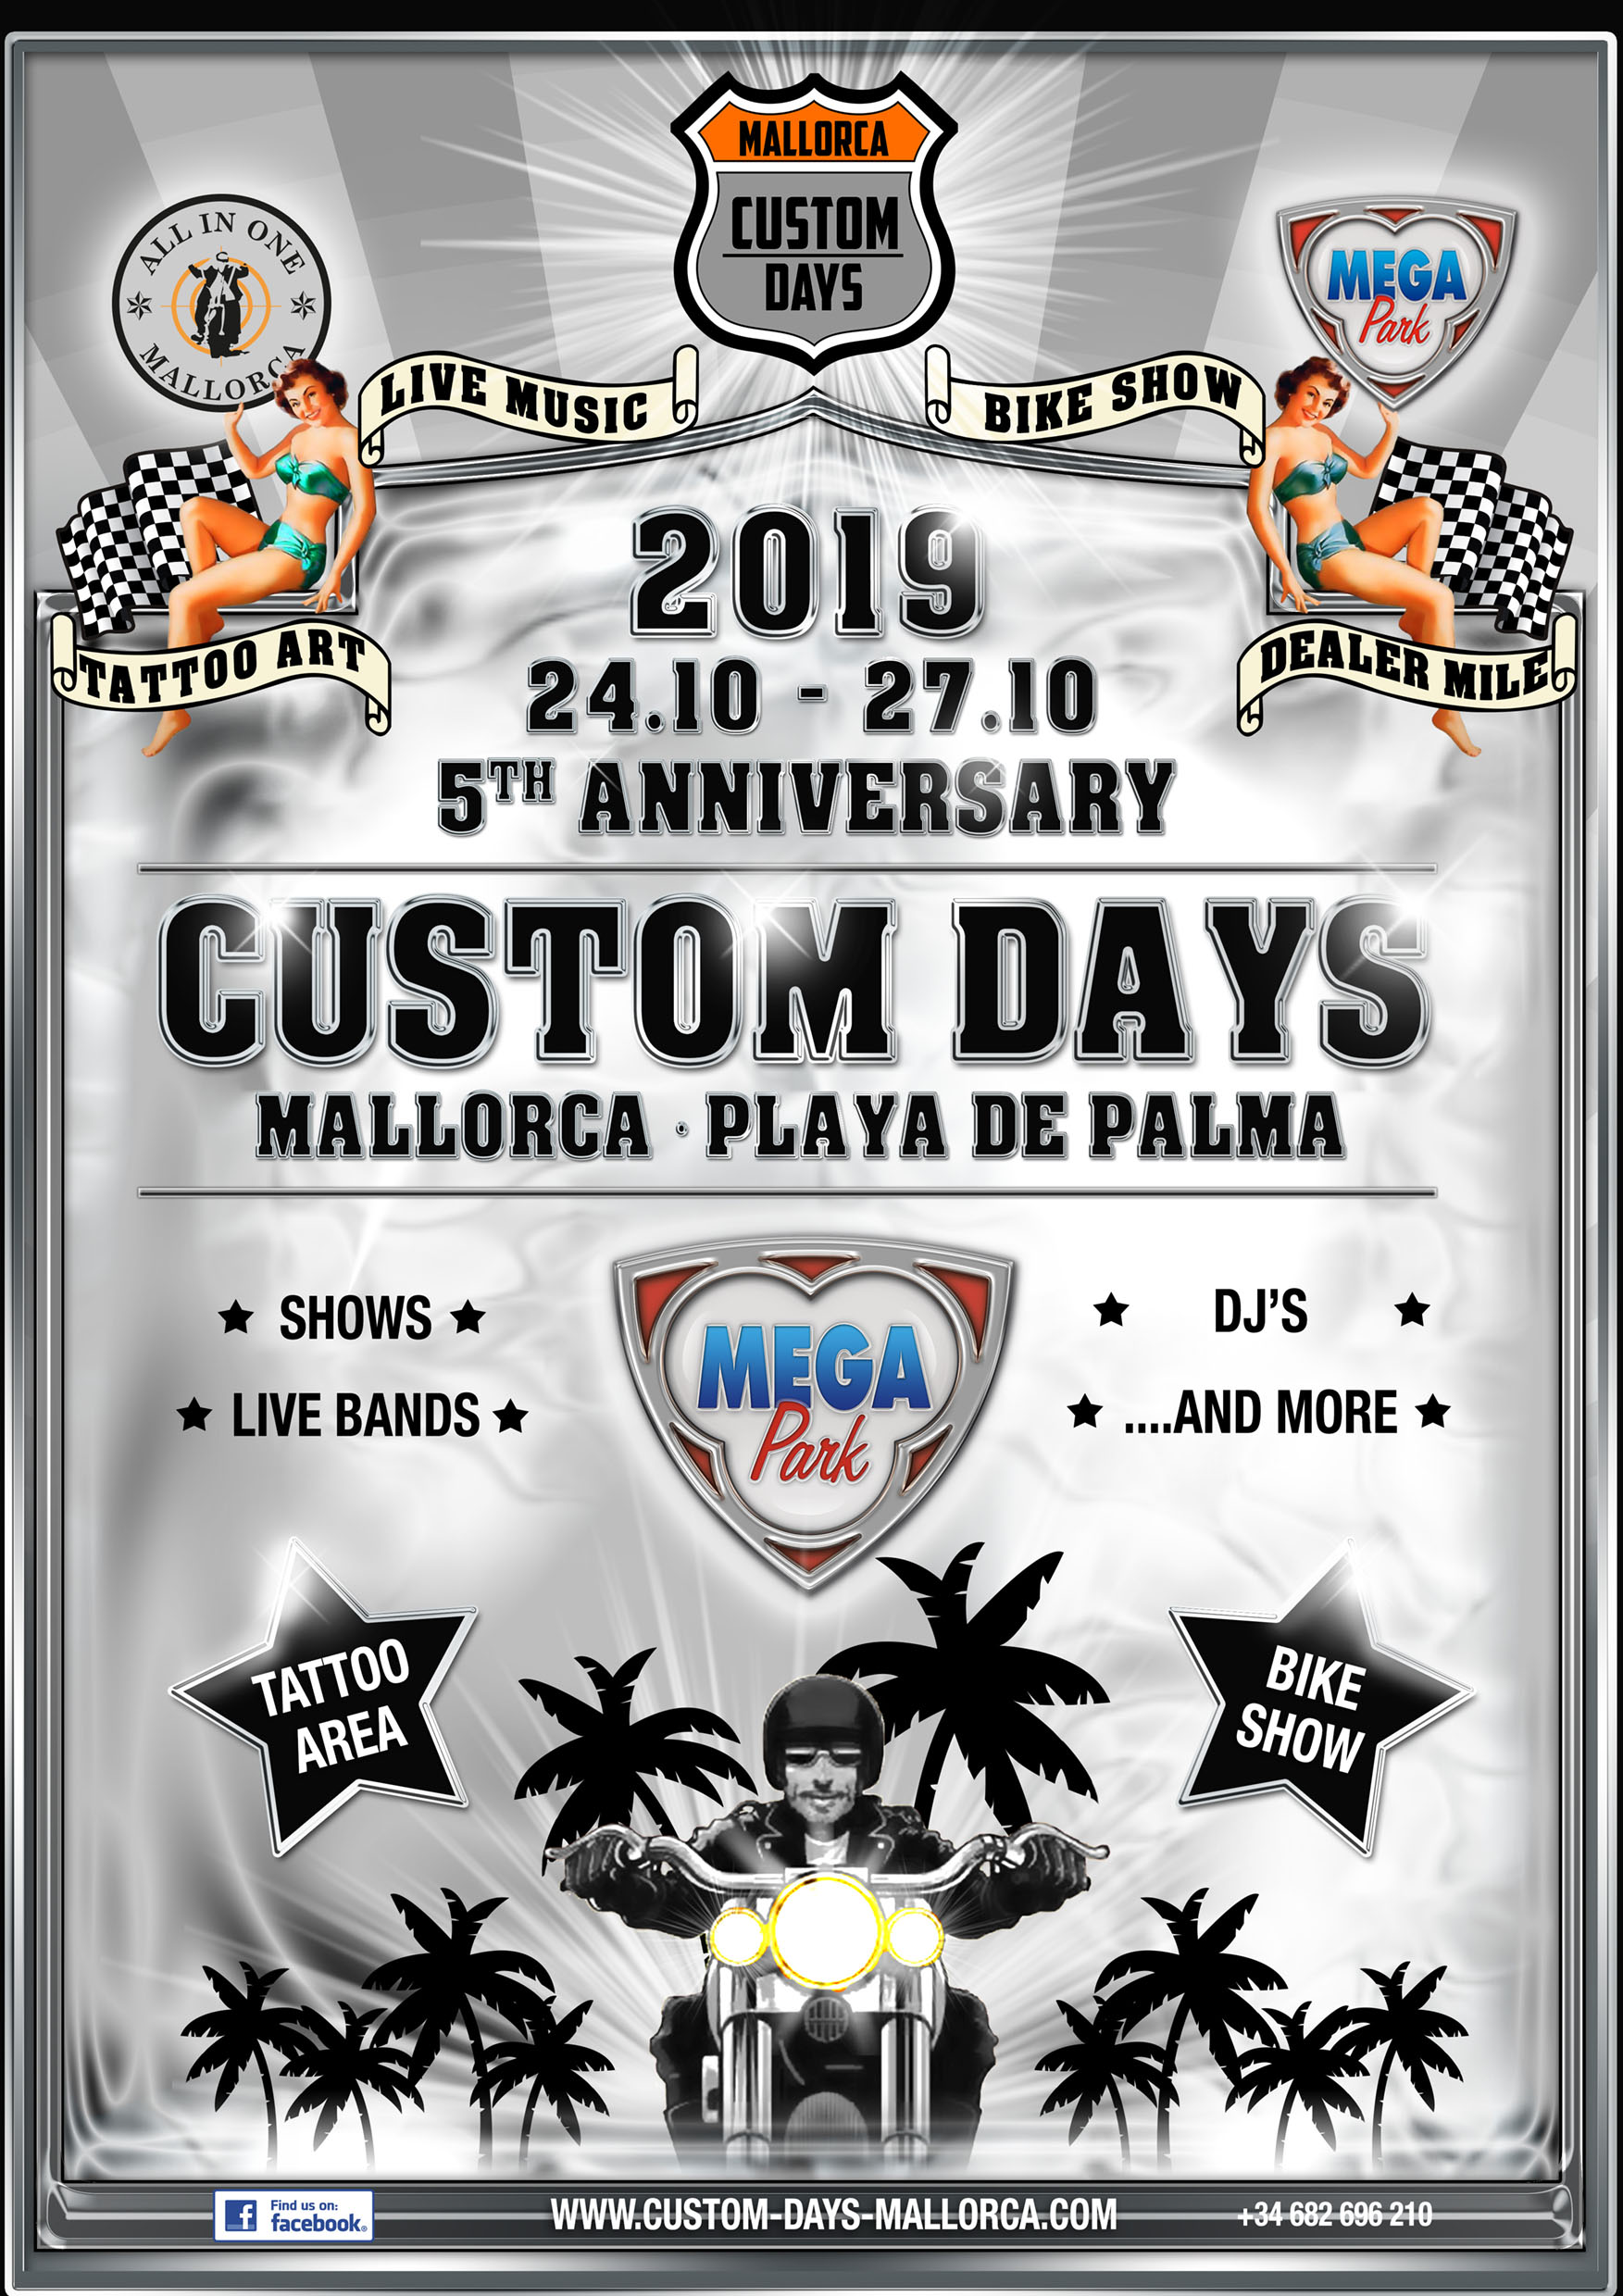 5. Custom Days Mallorca